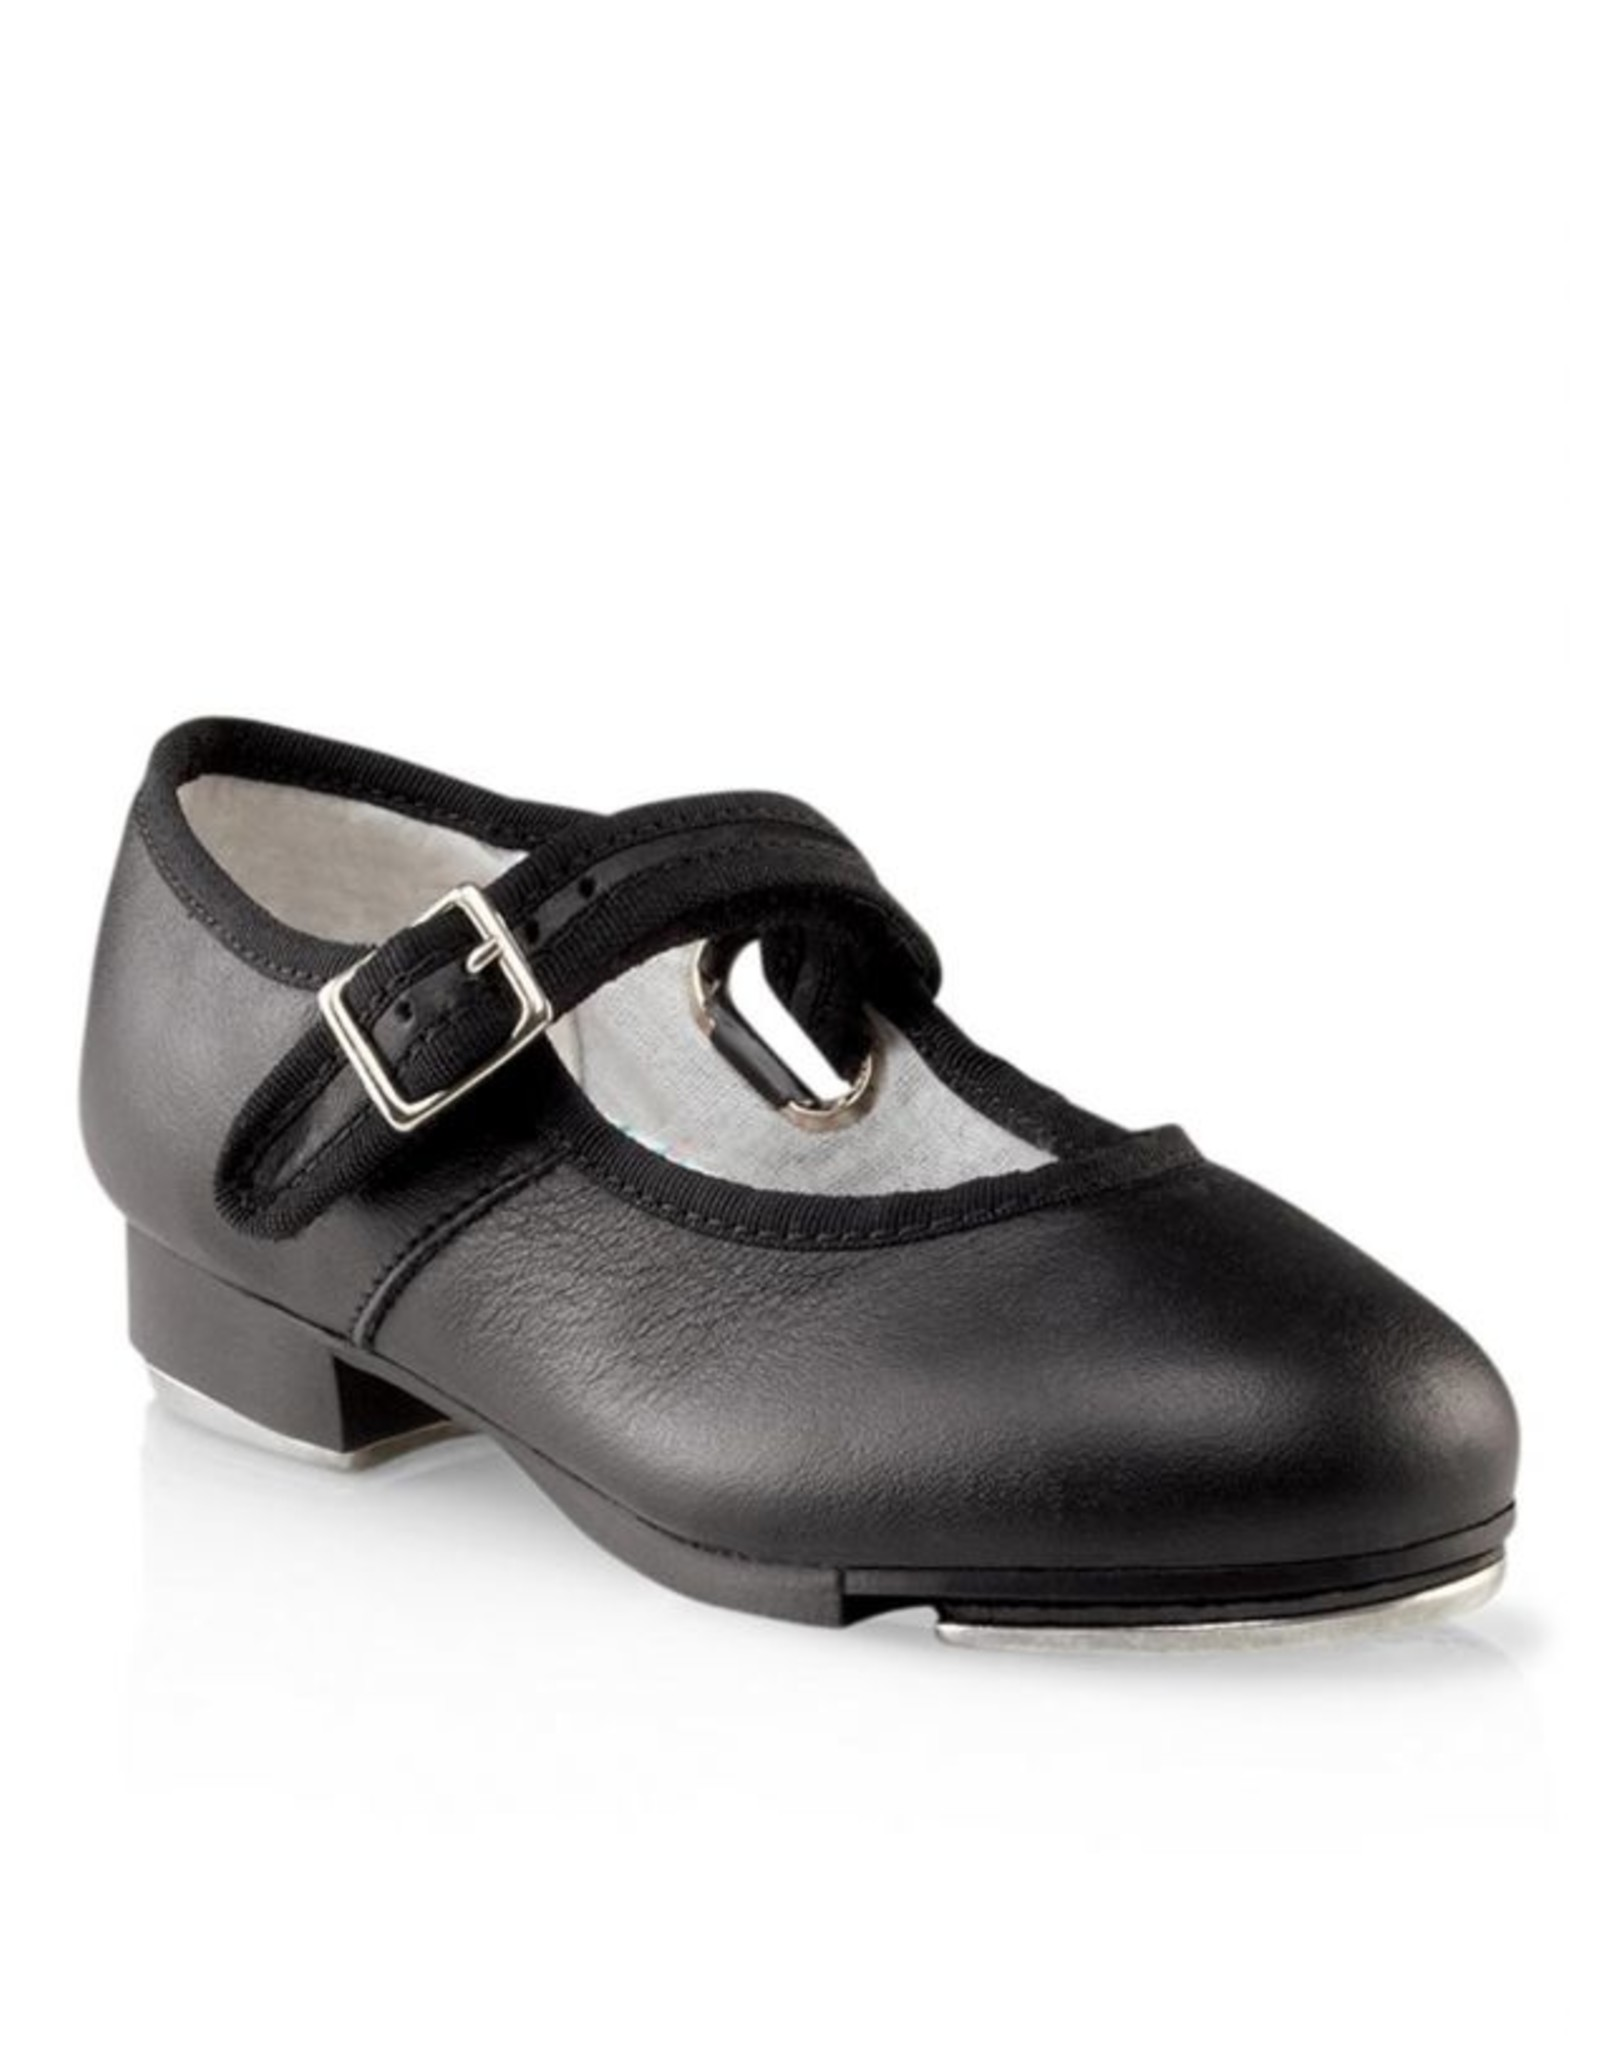 CHILDREN'S CAPEZIO MARY JANE TAP SHOE - 3800C